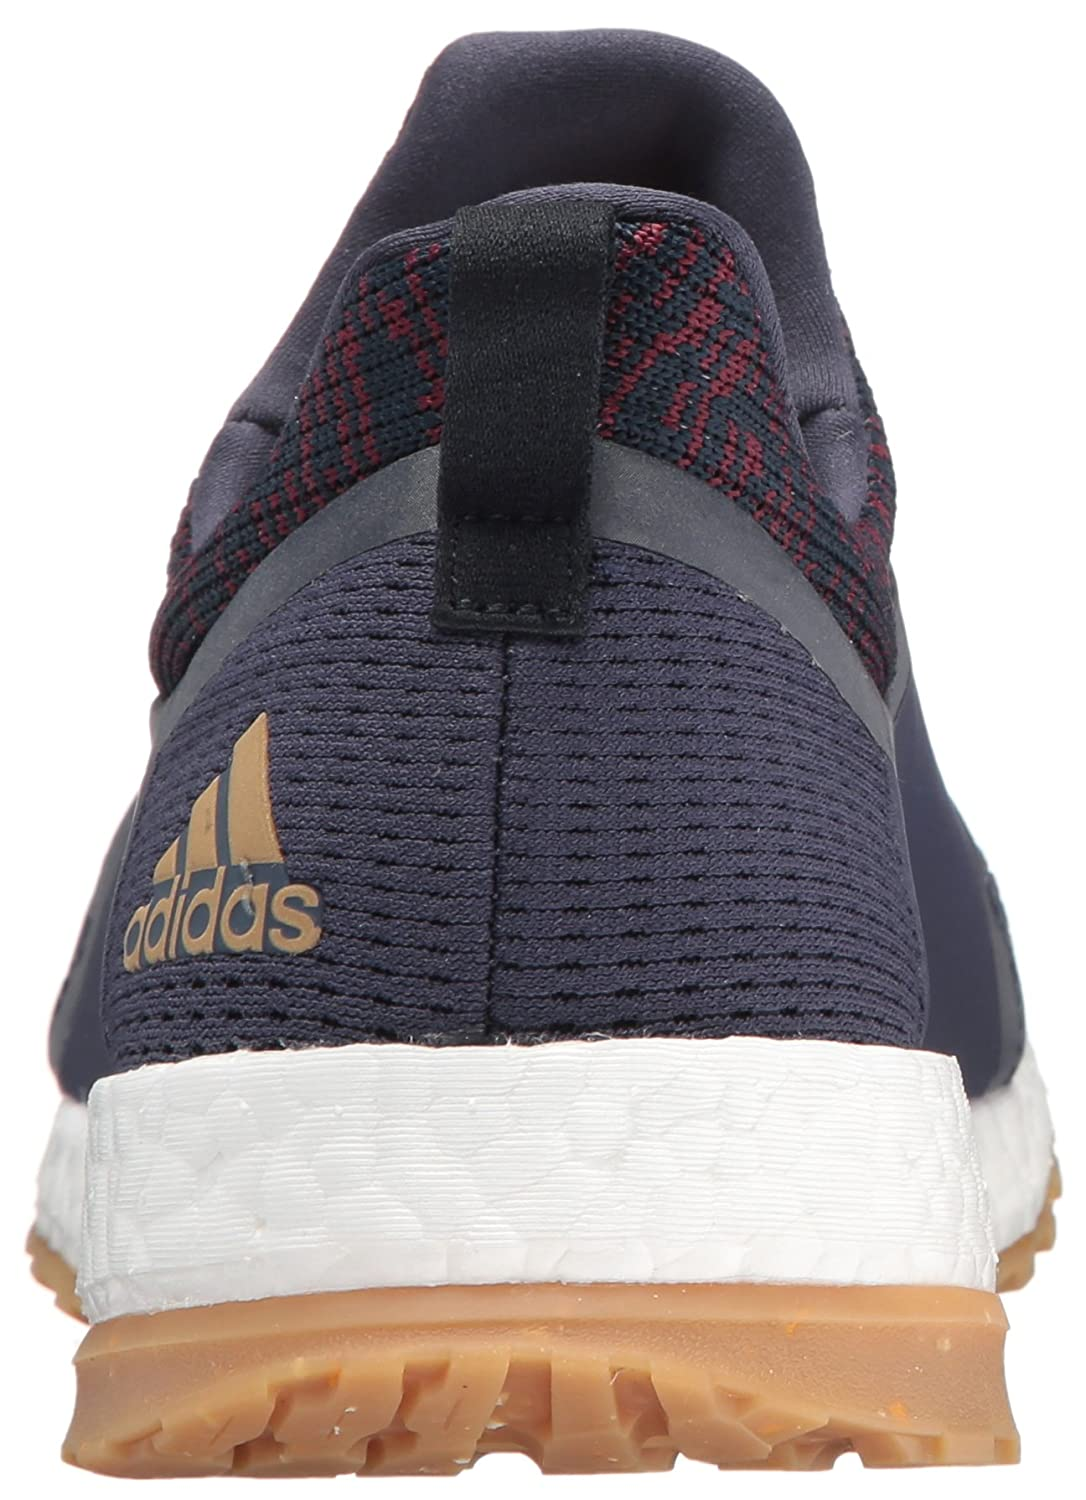 adidas Women's Pureboost X ATR Running Shoe B01MRORVIW 7.5 B(M) US|Legend Ink/Red Night/Tactile Yellow